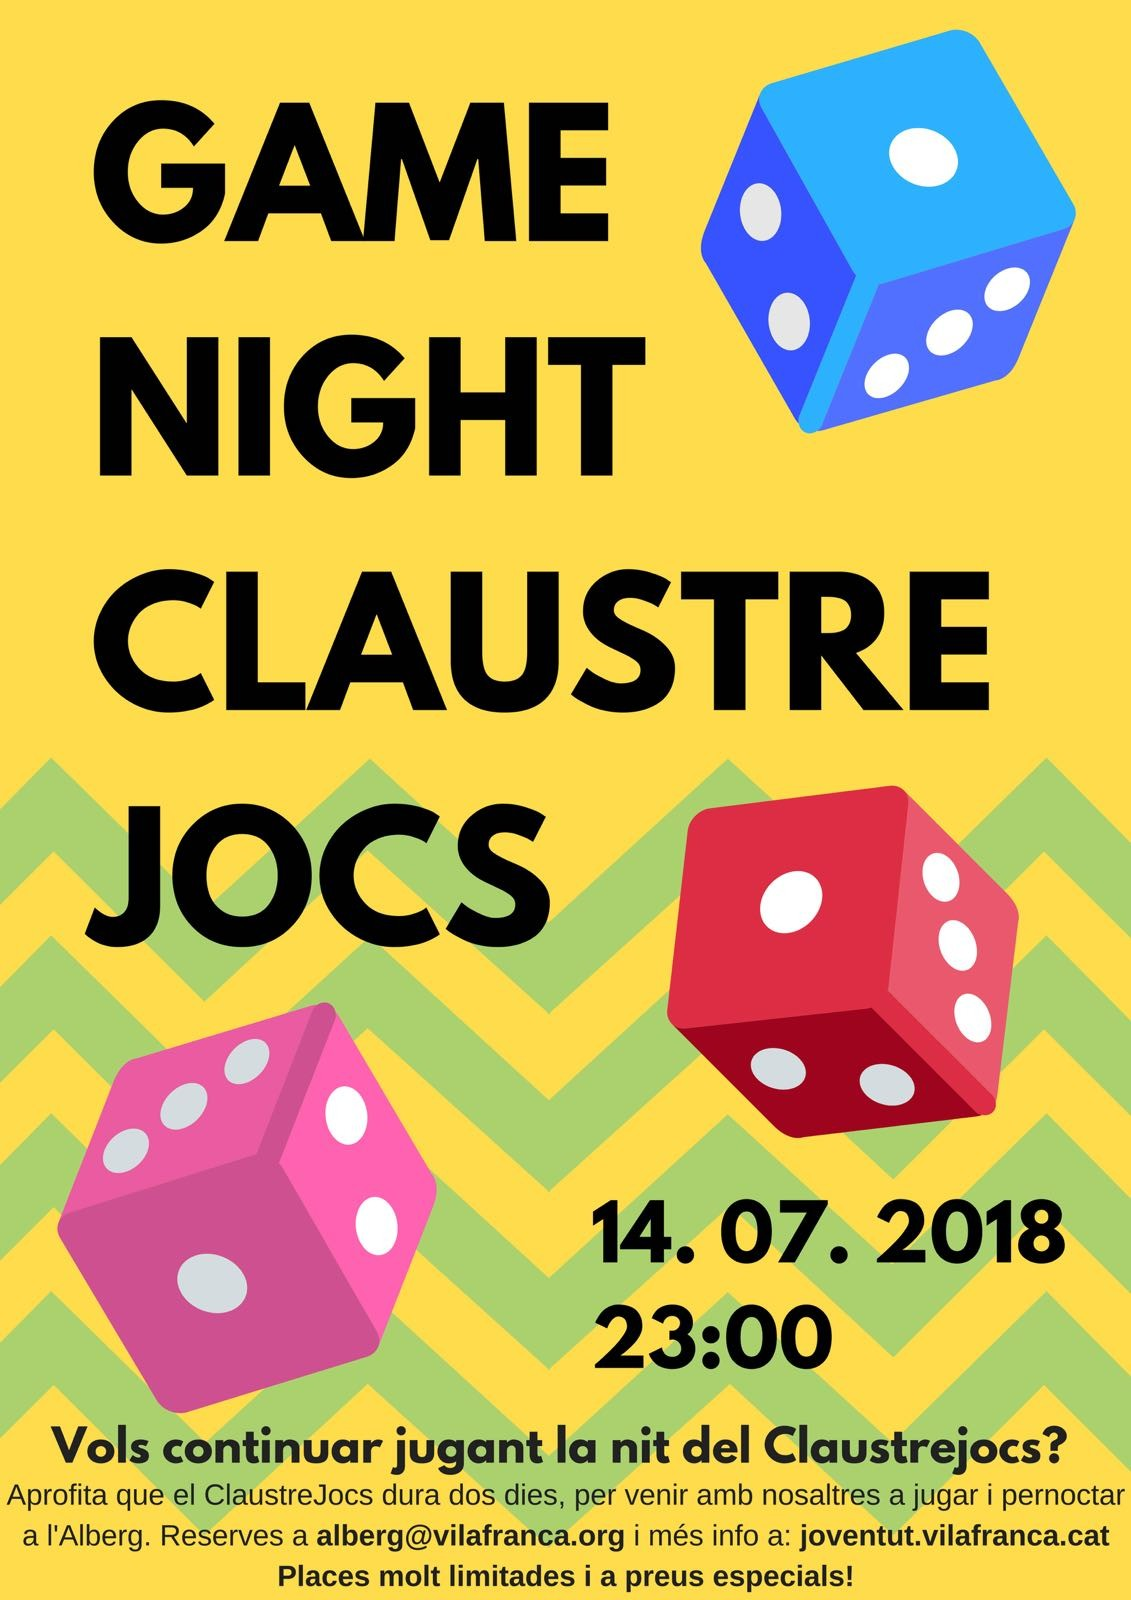 Game Night Claustre Jocs